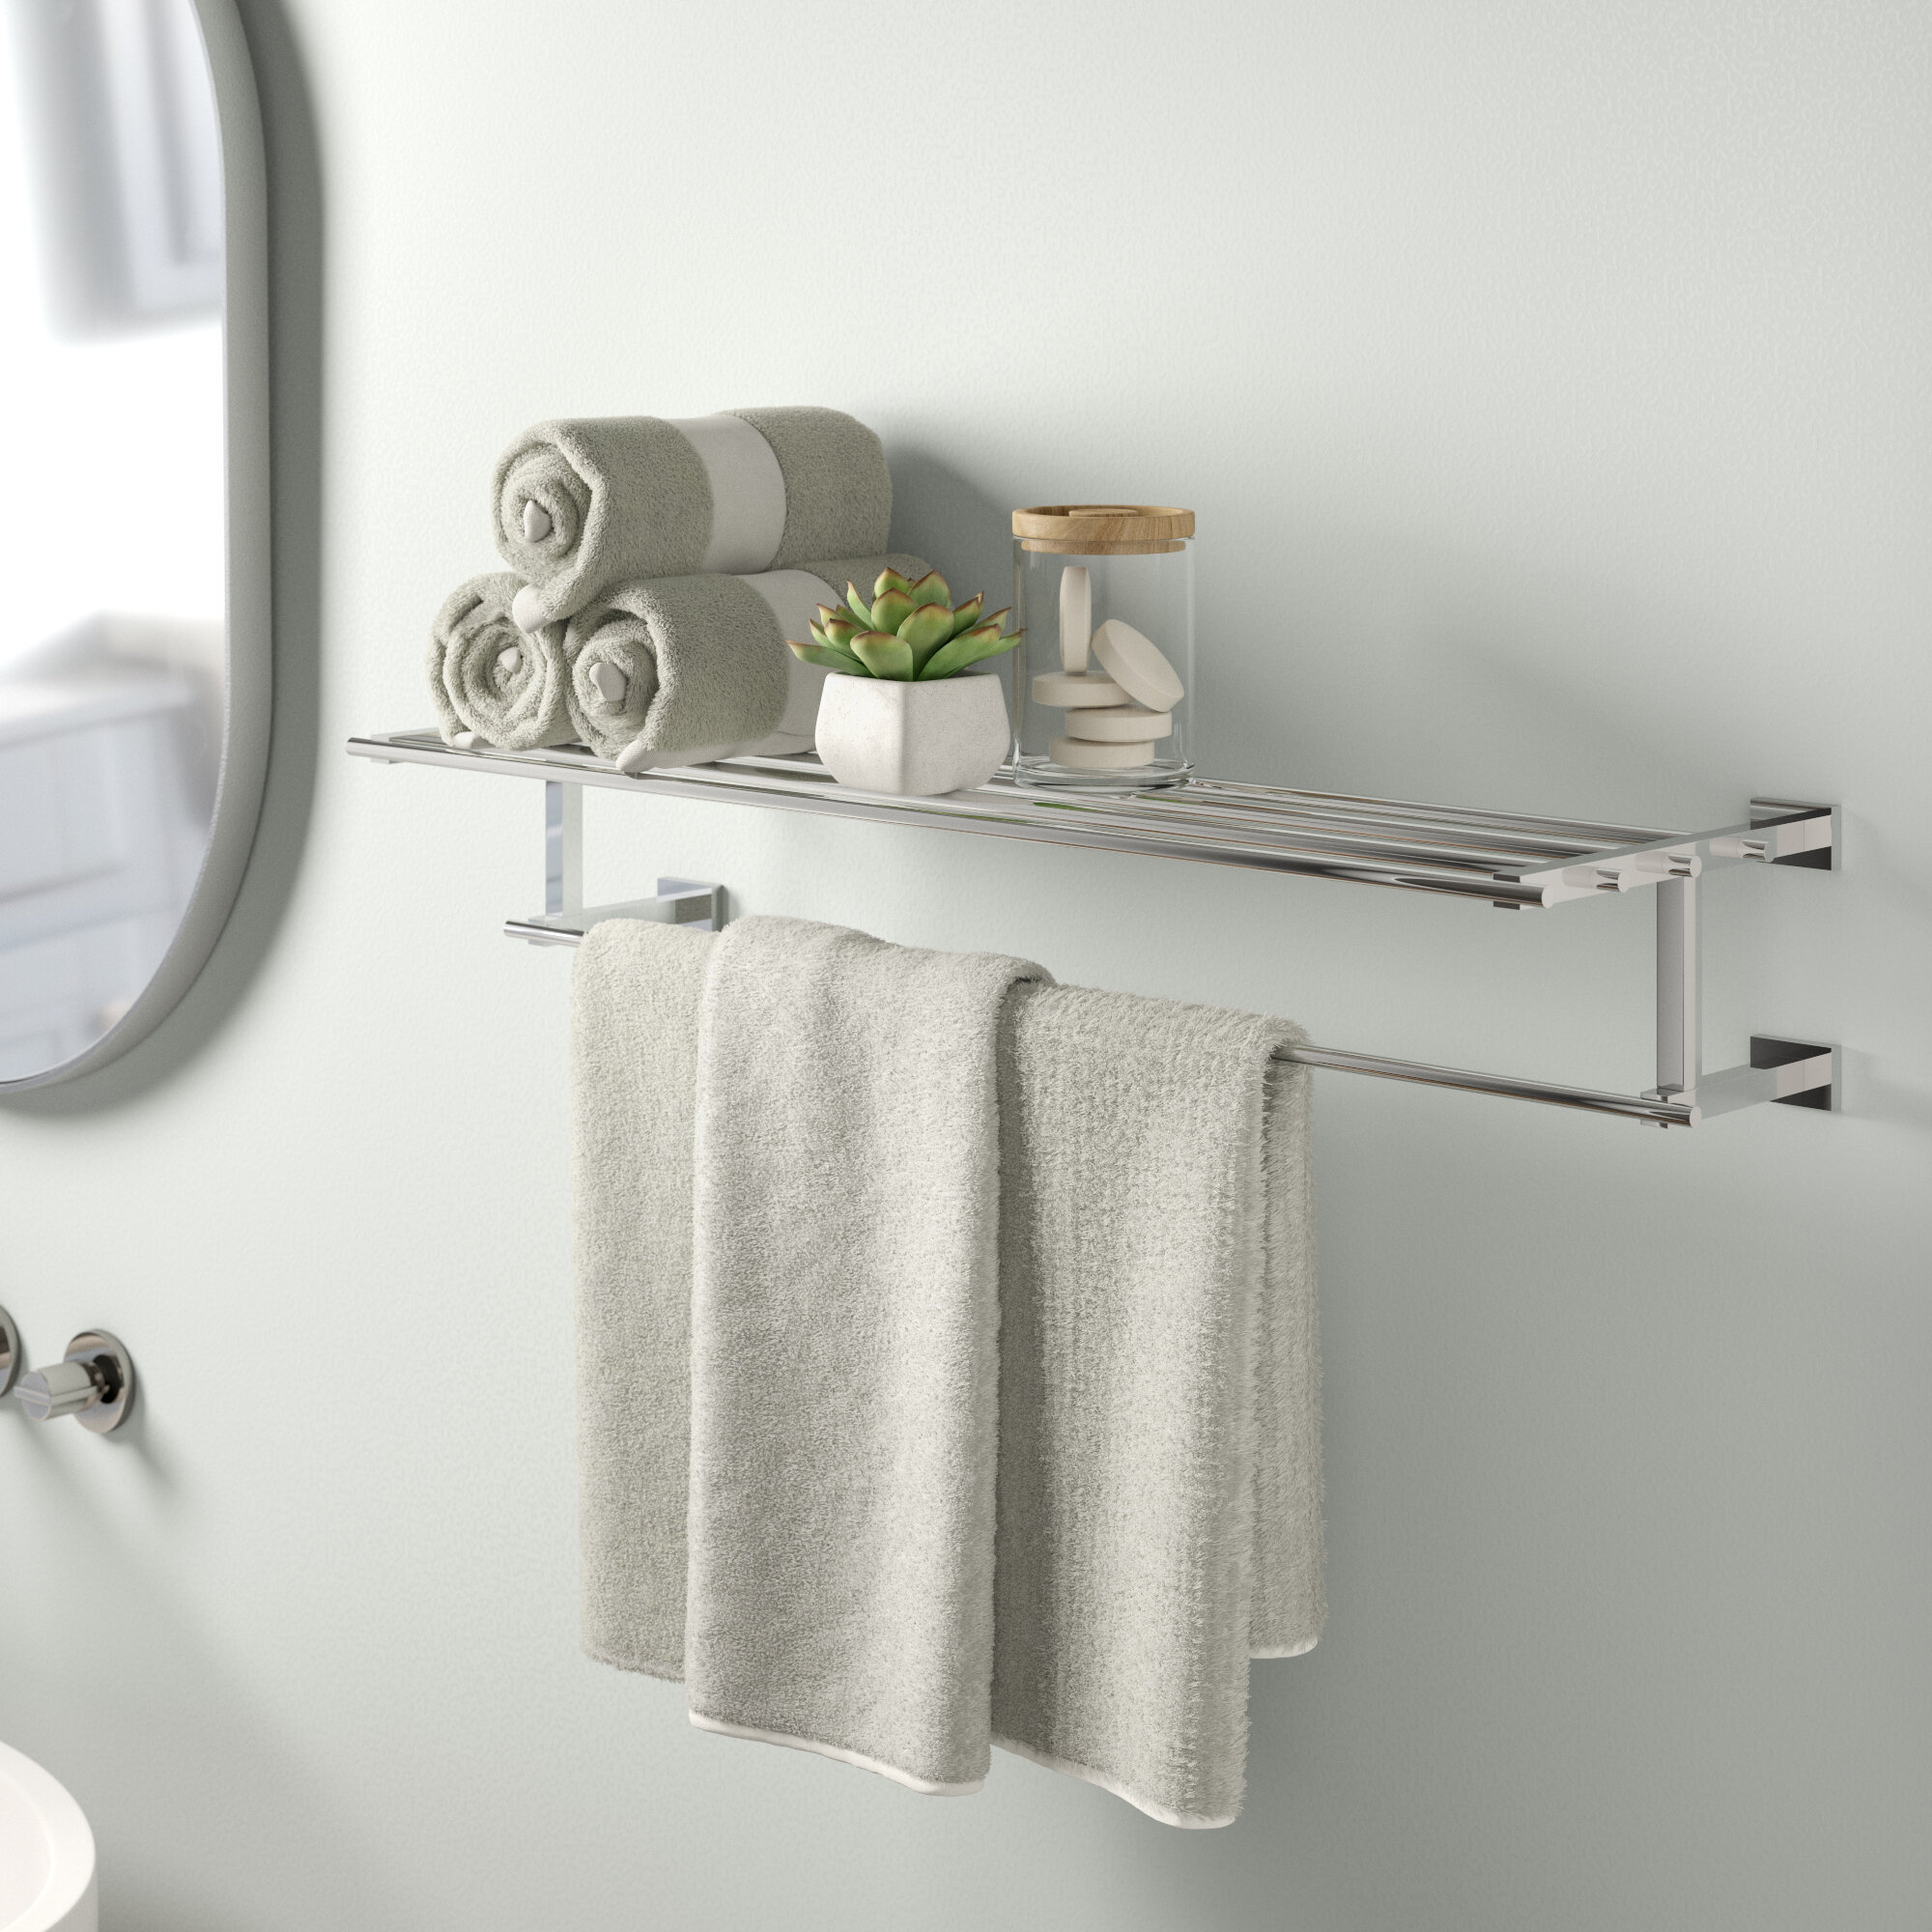 Grohe Essentials Cube Multi Towel 67cm Wall Mounted Towel Rack Reviews Wayfair Co Uk